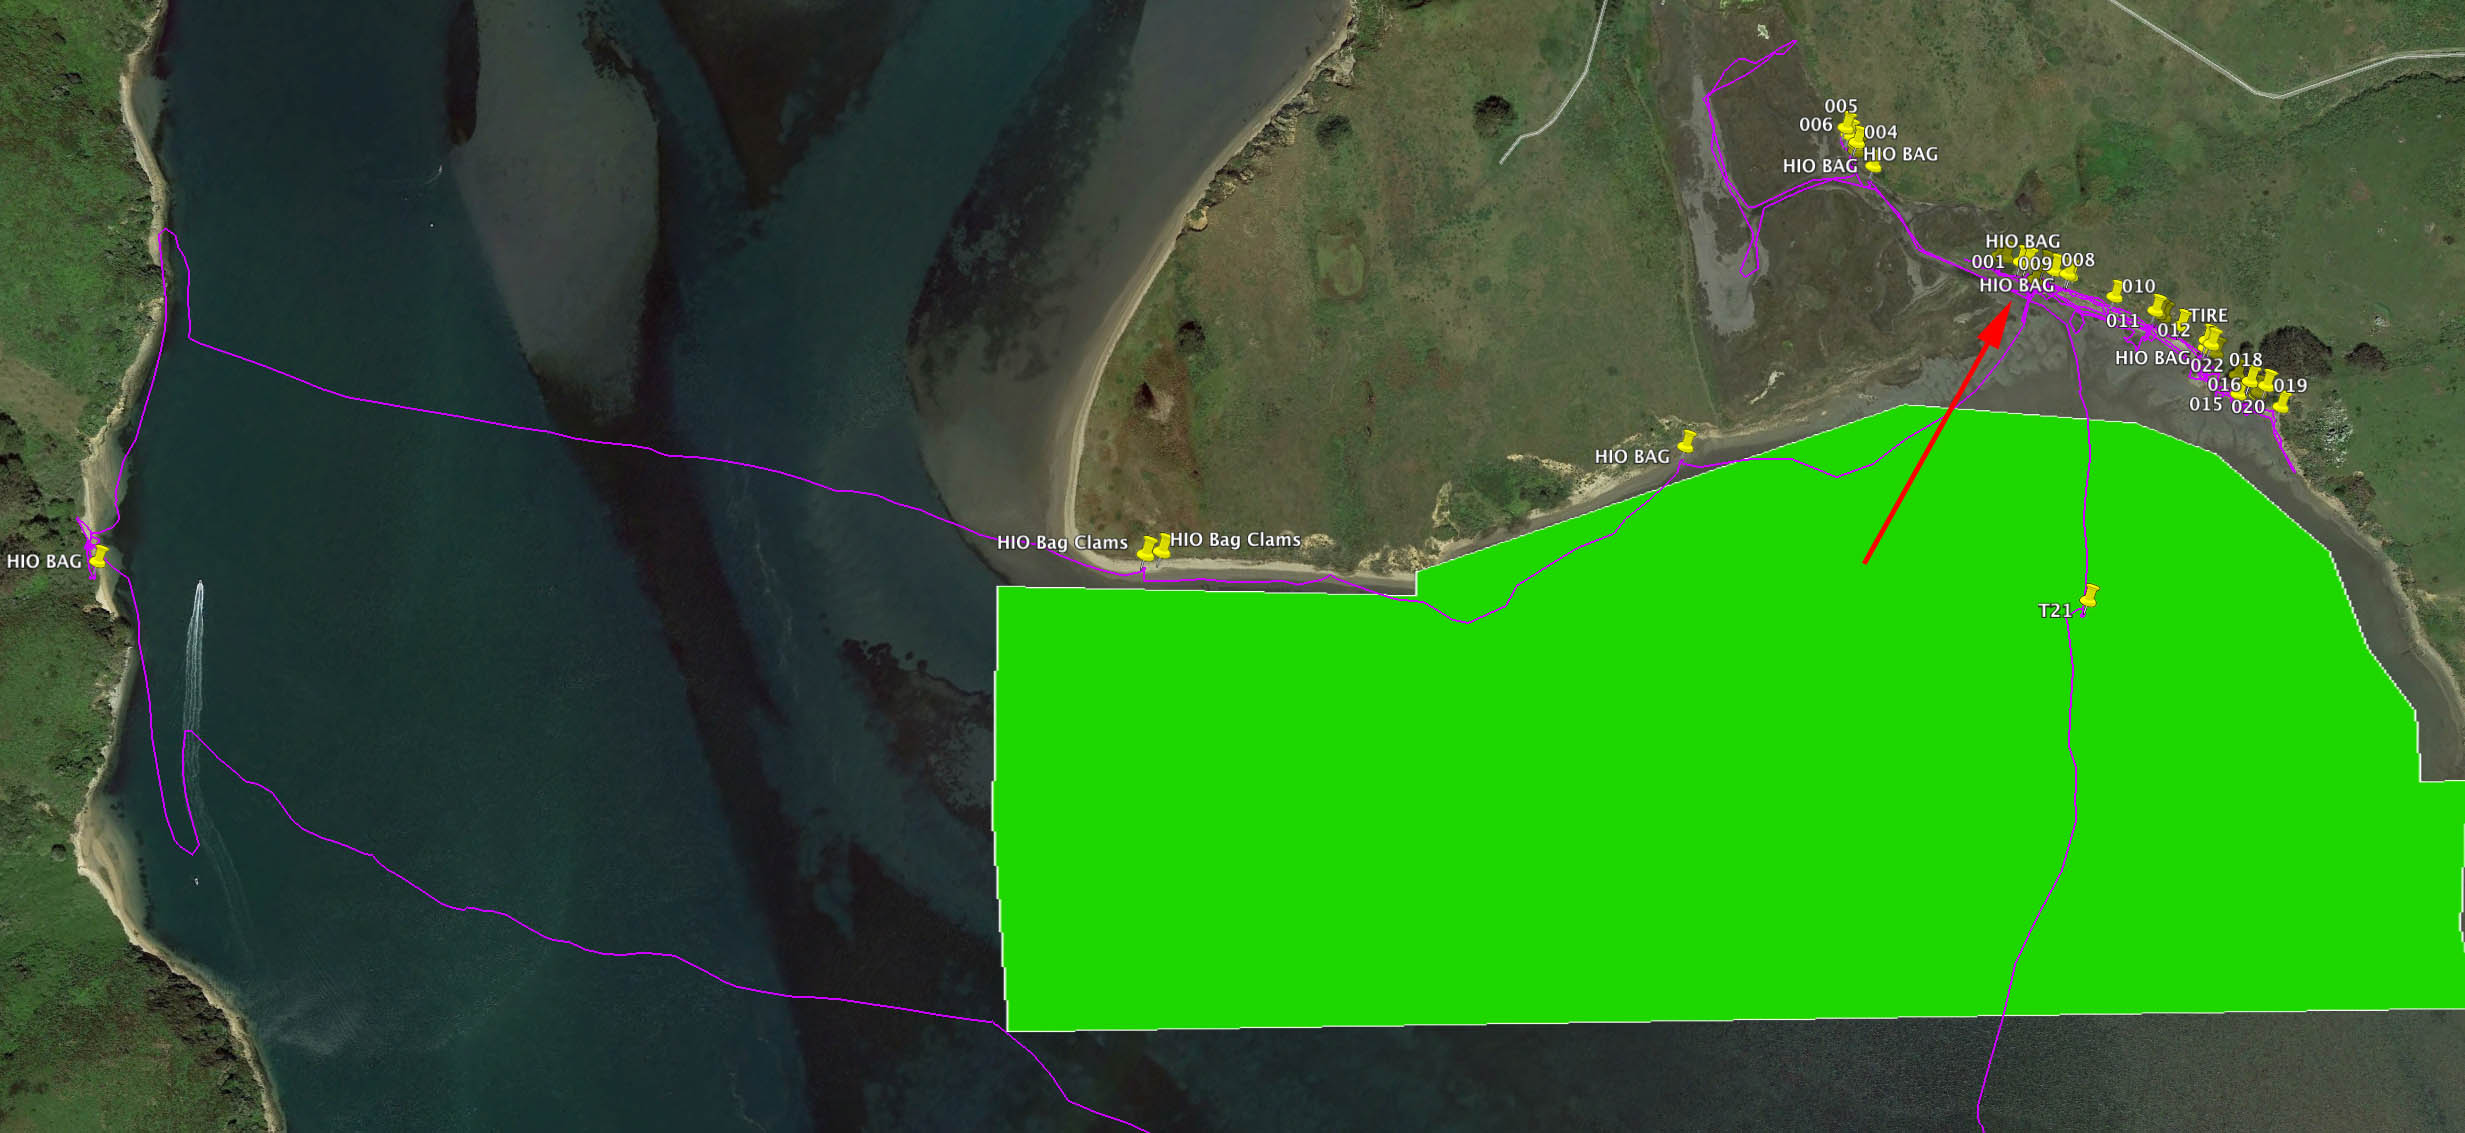 Green polygon depicts Hog Island Oysters lease M-430-15, near Tom's Point. Red arrow points to location where abandoned grow-out bags were left on 22 March. Each yellow pin shows location of abandoned grow-out bag. T21 is where I reattached 3 bags of live oysters to anchor line.